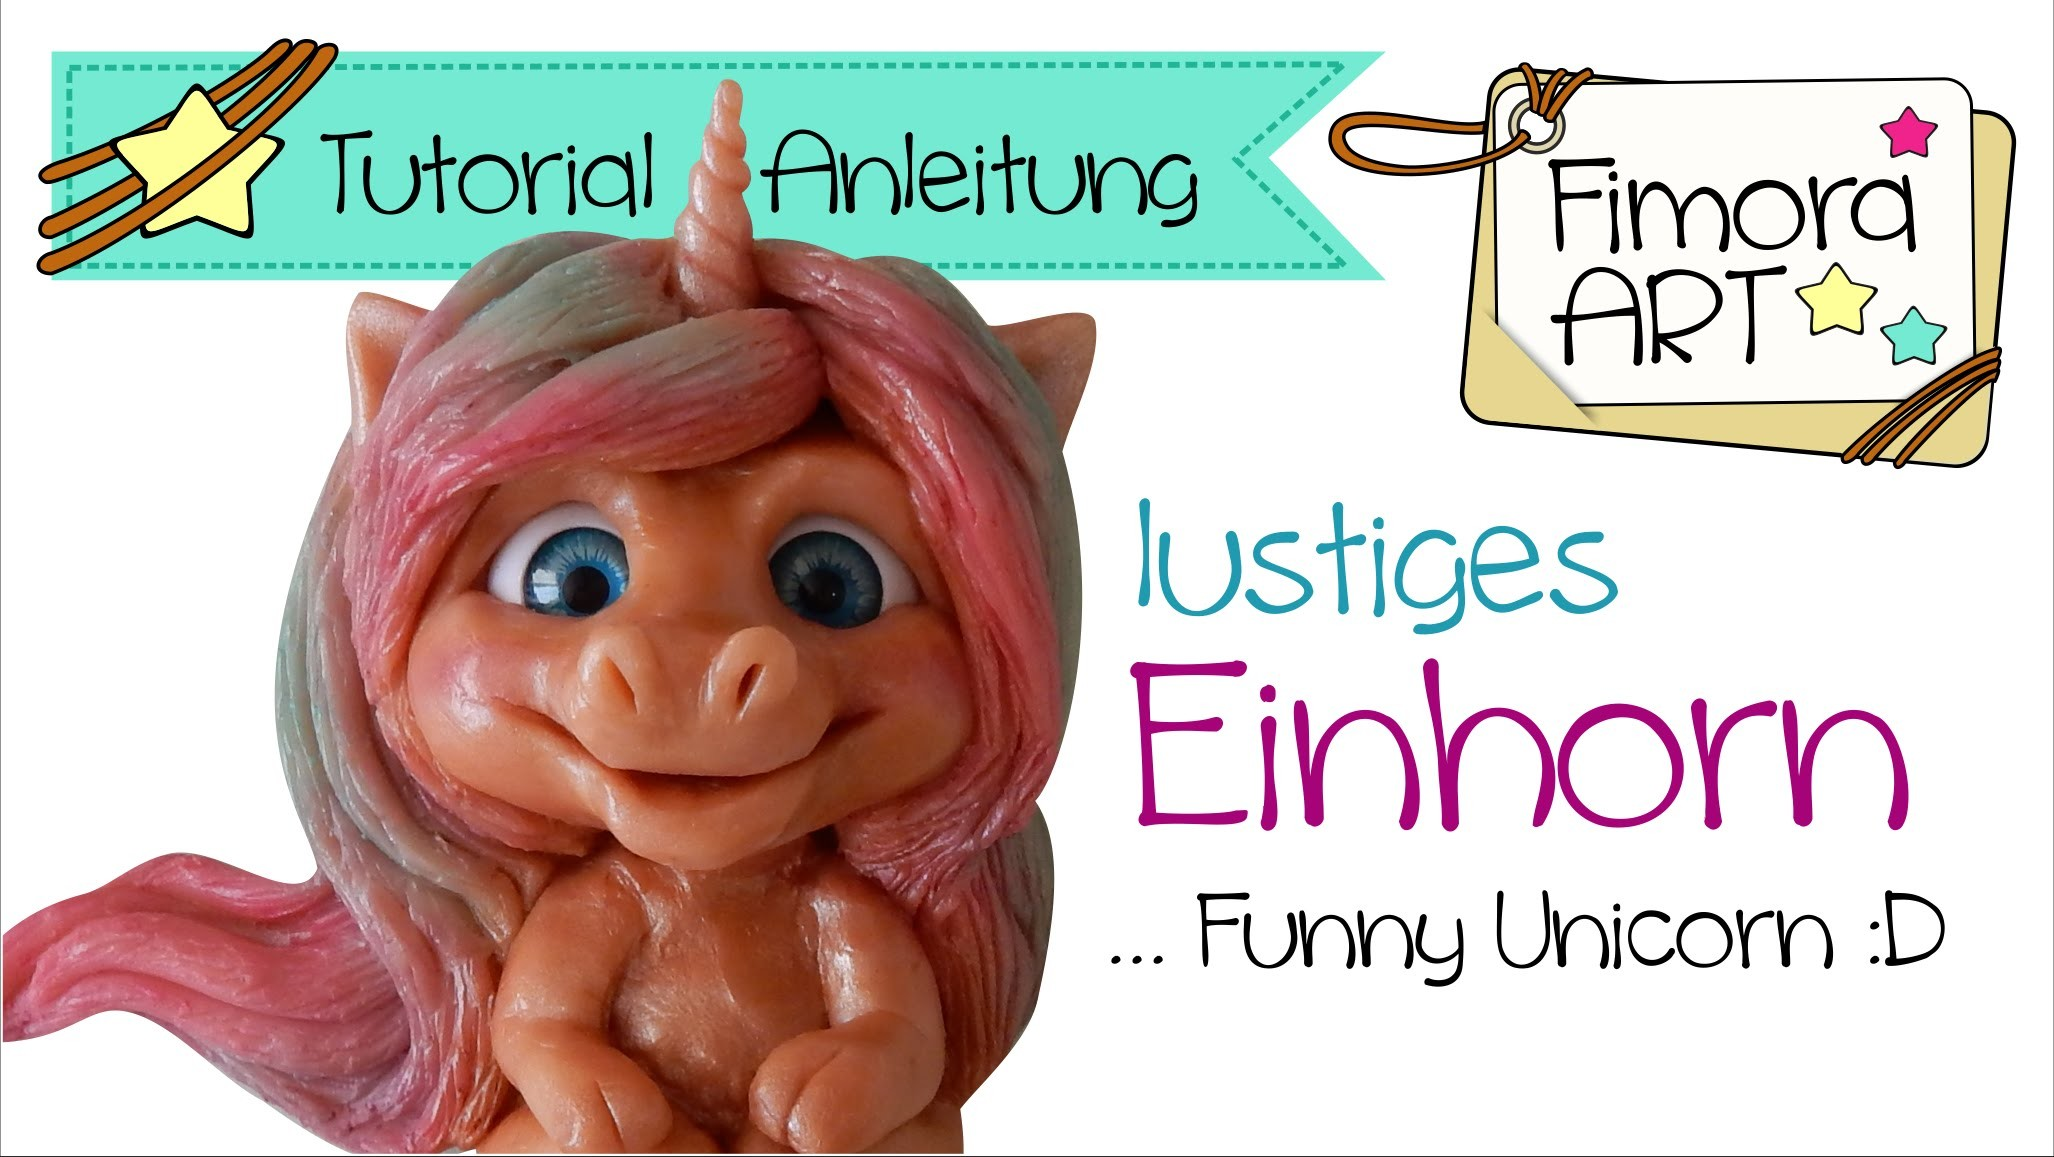 [Fimo- Polymer Clay Tutorial. KoOp Craft] .   Lustiges Einhorn . . Fimora Art